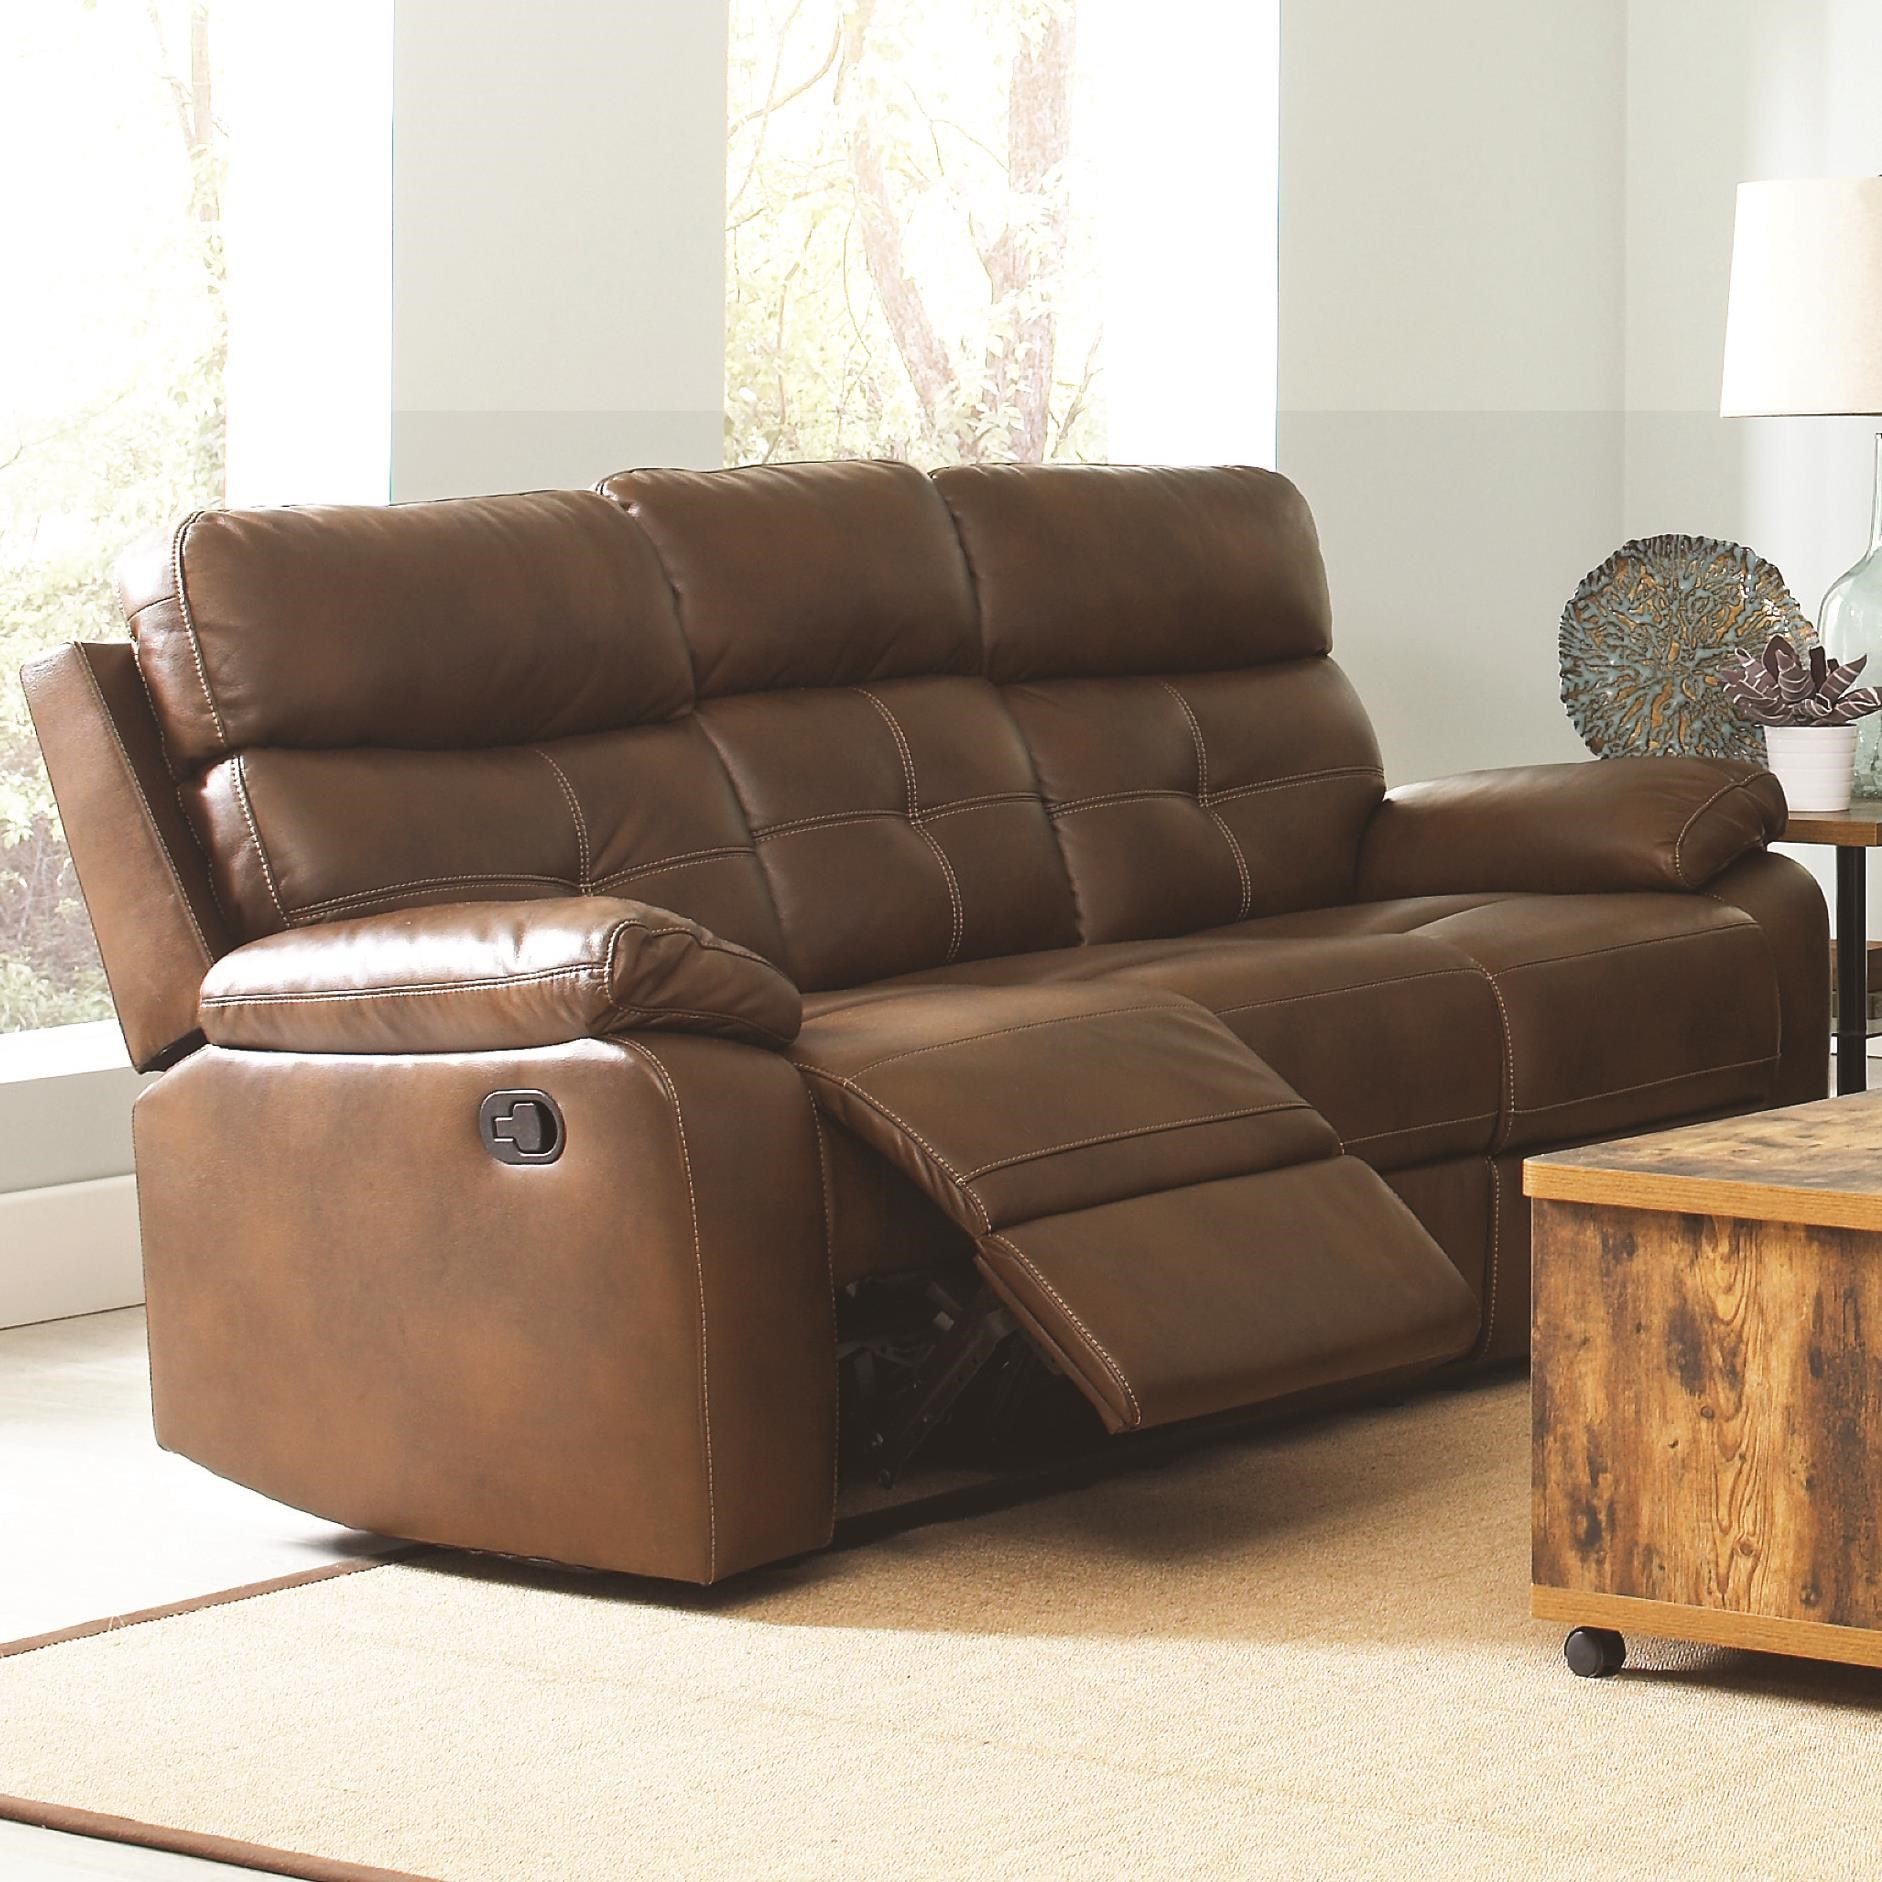 Coaster Damiano Casual Faux Leather Reclining Sofa With Button Tuft  Detailing   Coaster Fine Furniture